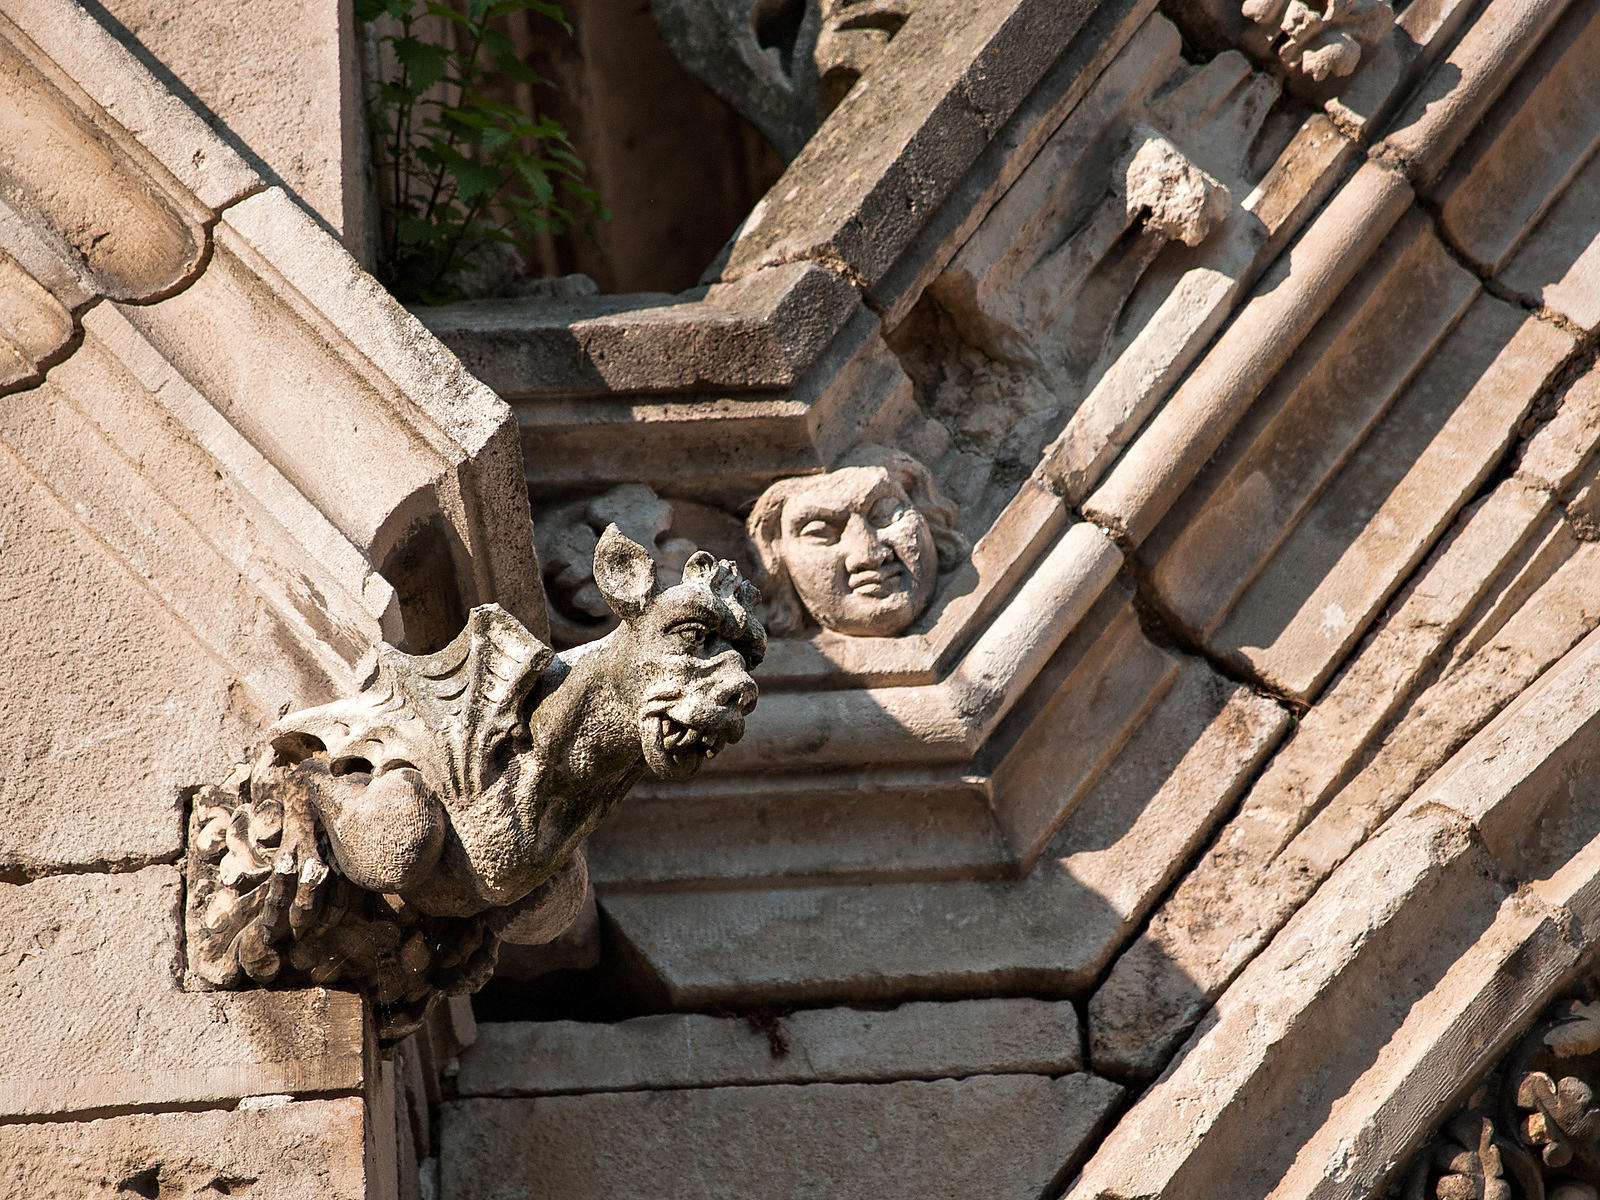 Gargoyle of Chateauneuf sur Cher church